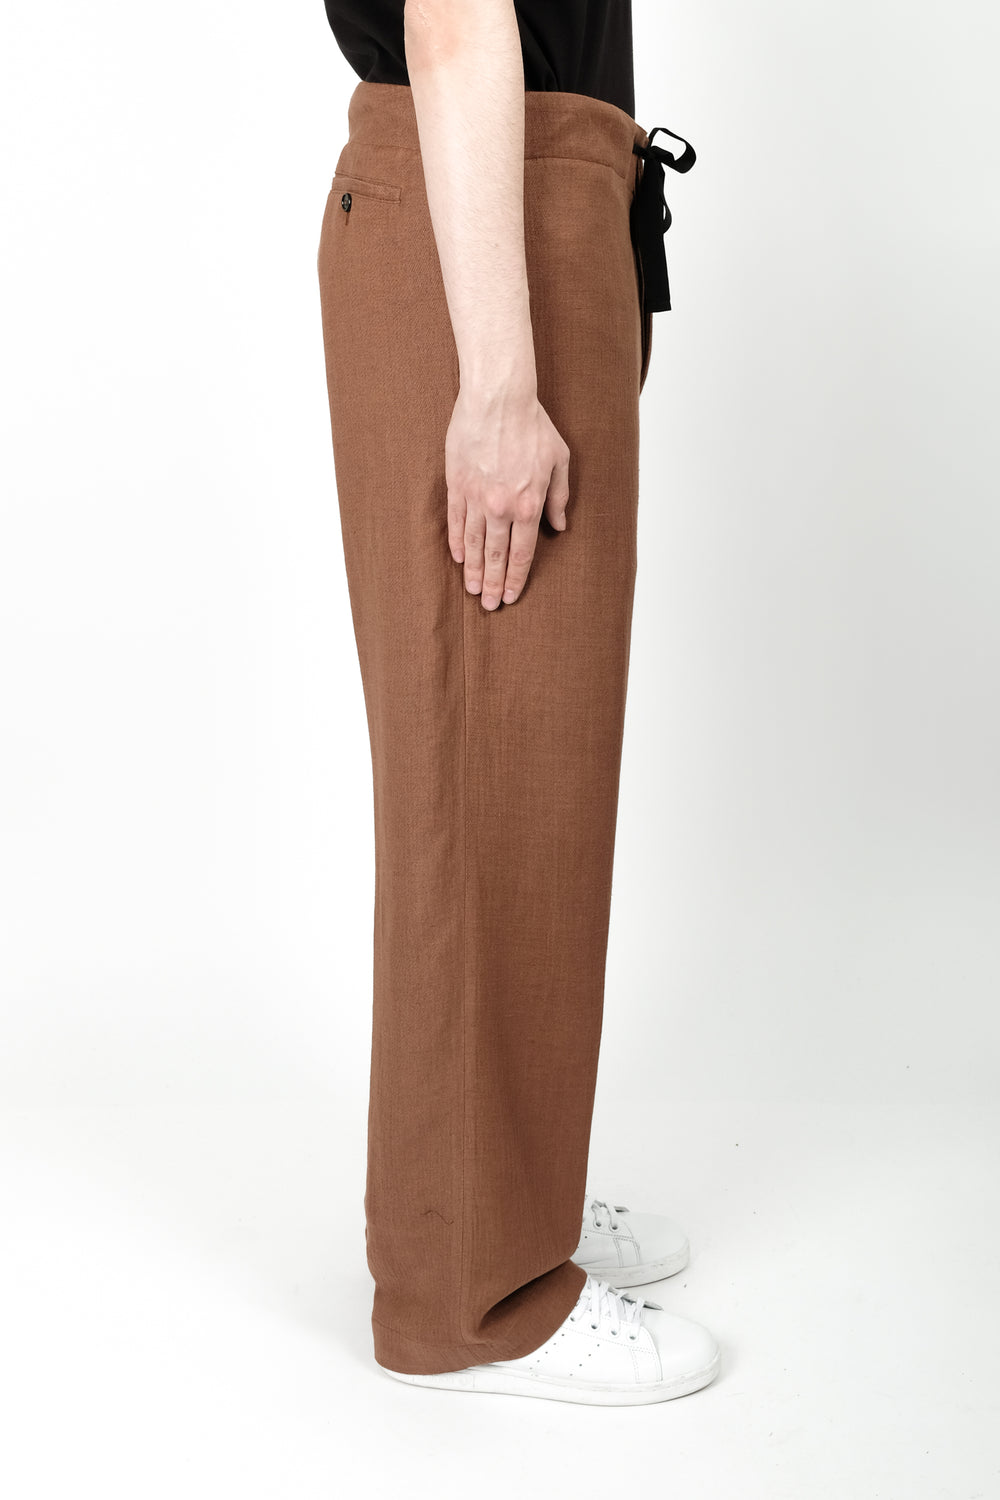 Ann Demeulemeester Larry Trousers In Terracotta